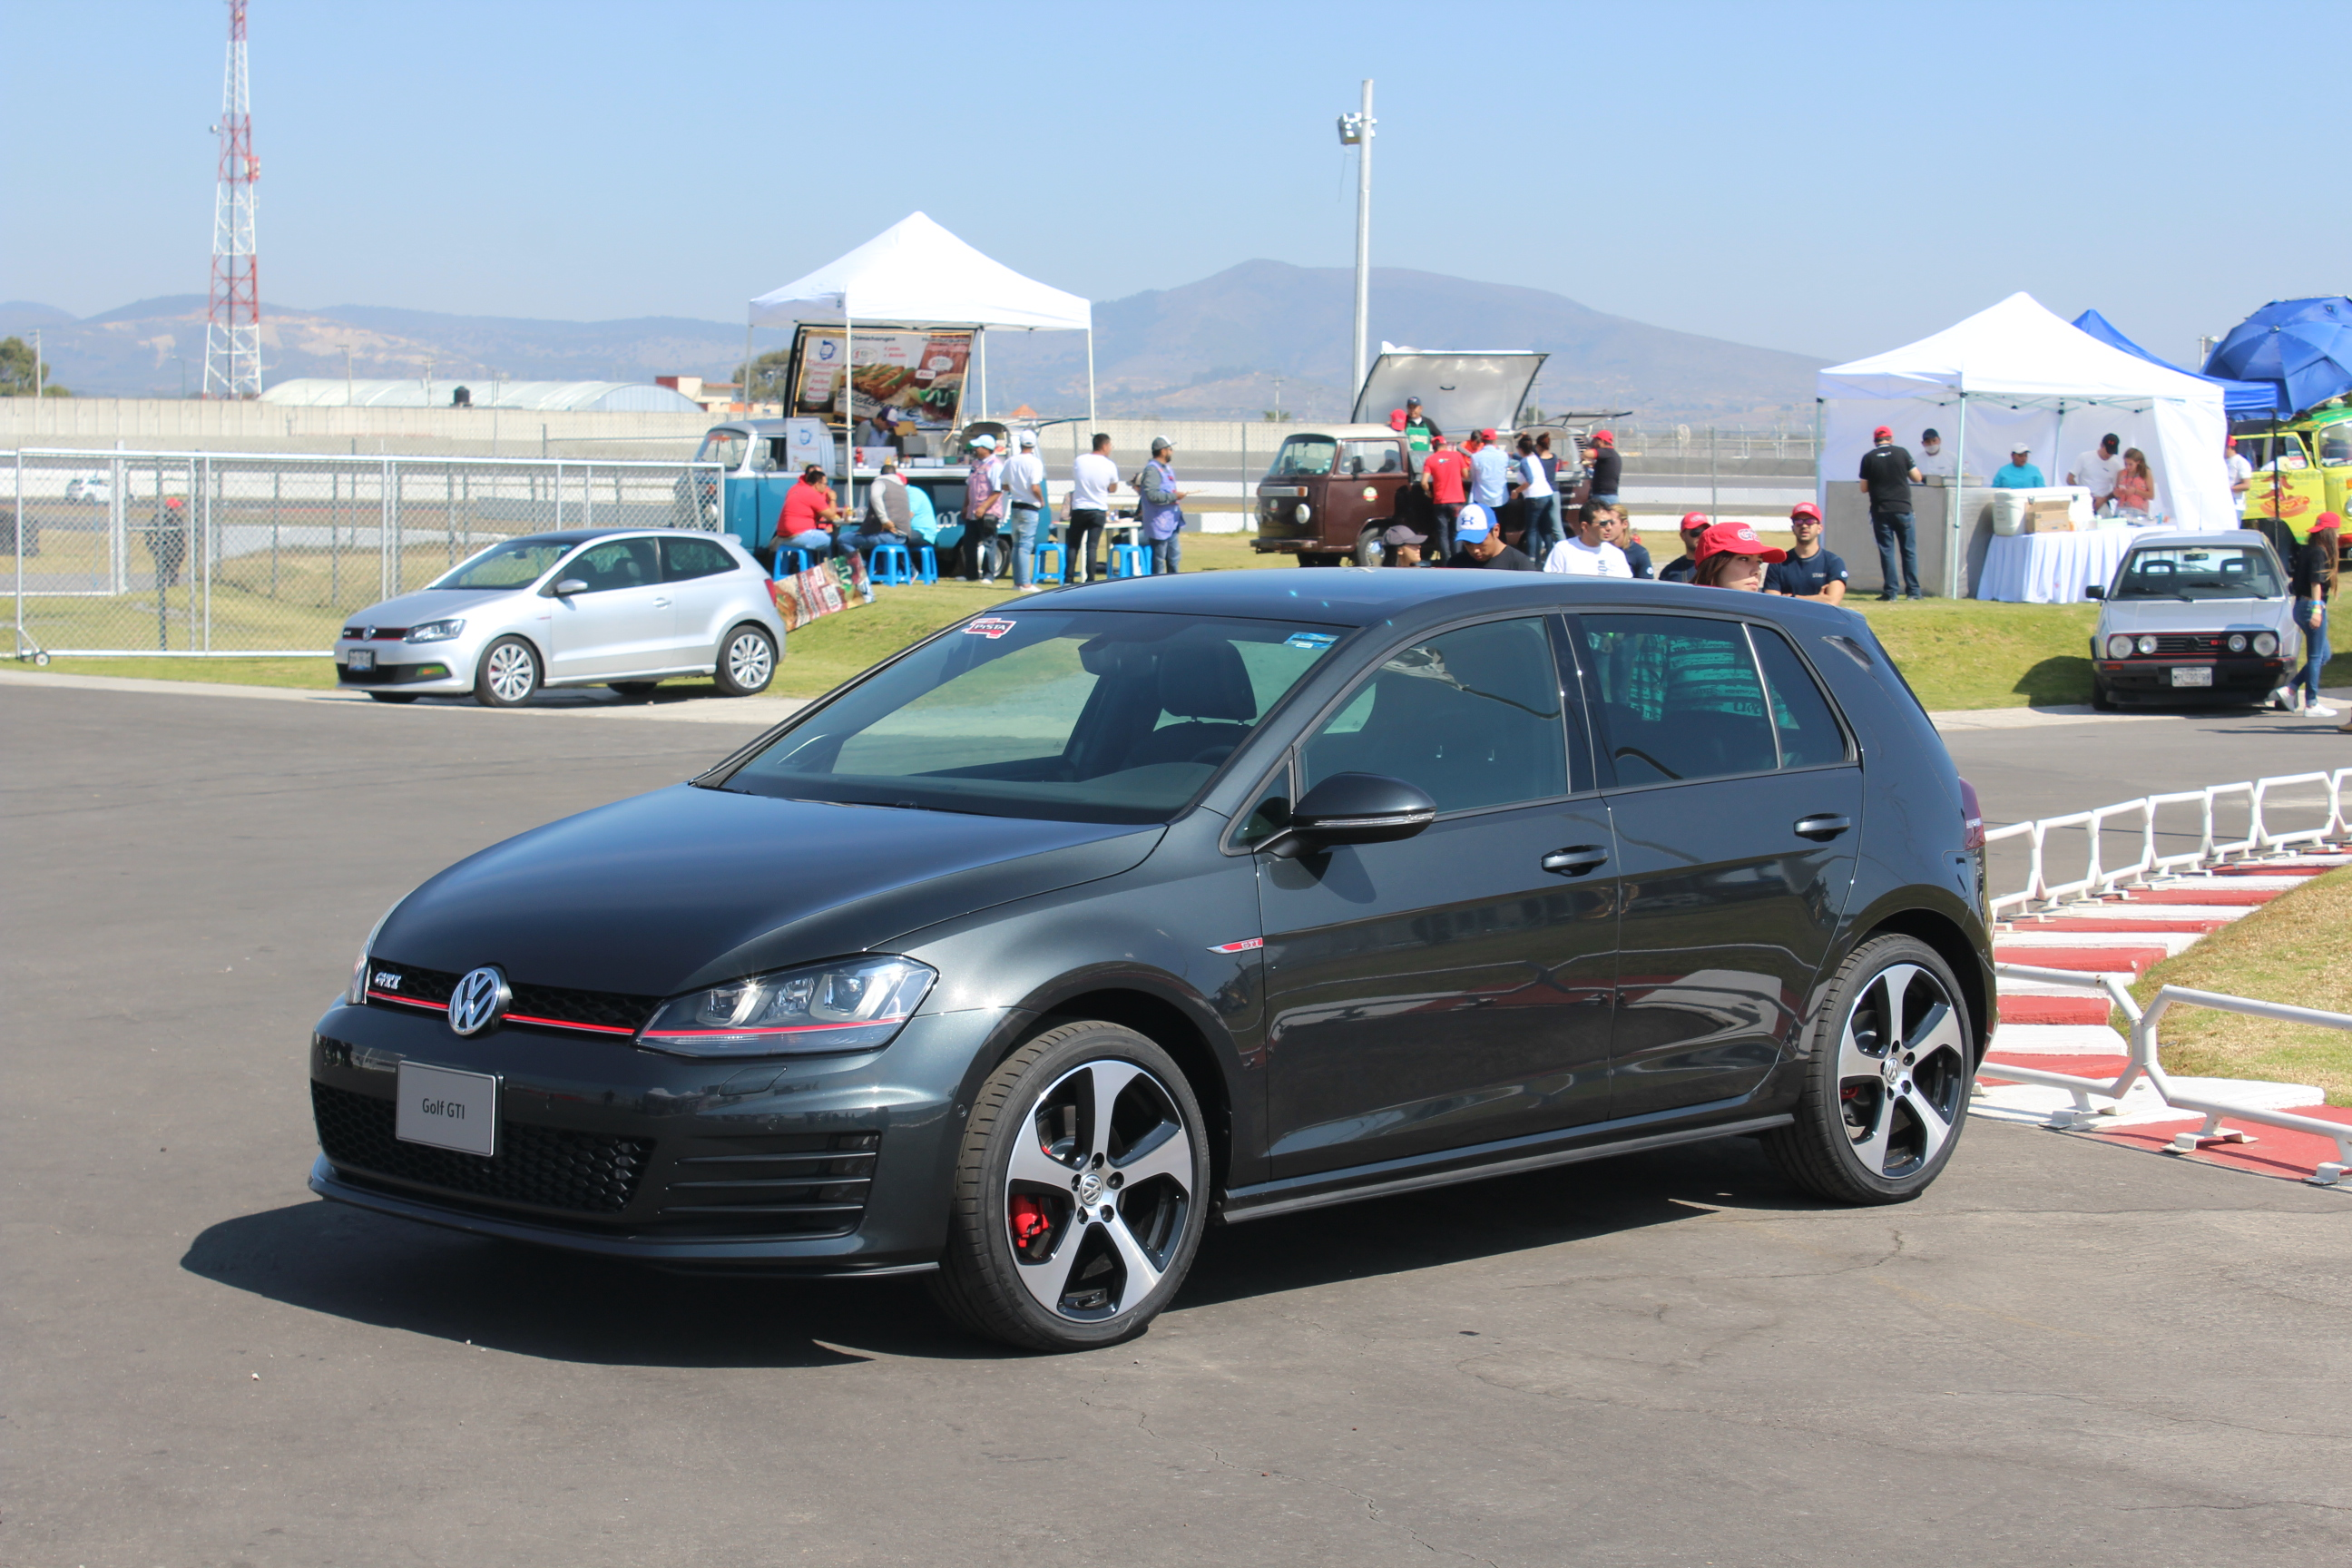 Golf GTI track-day 40 años 4